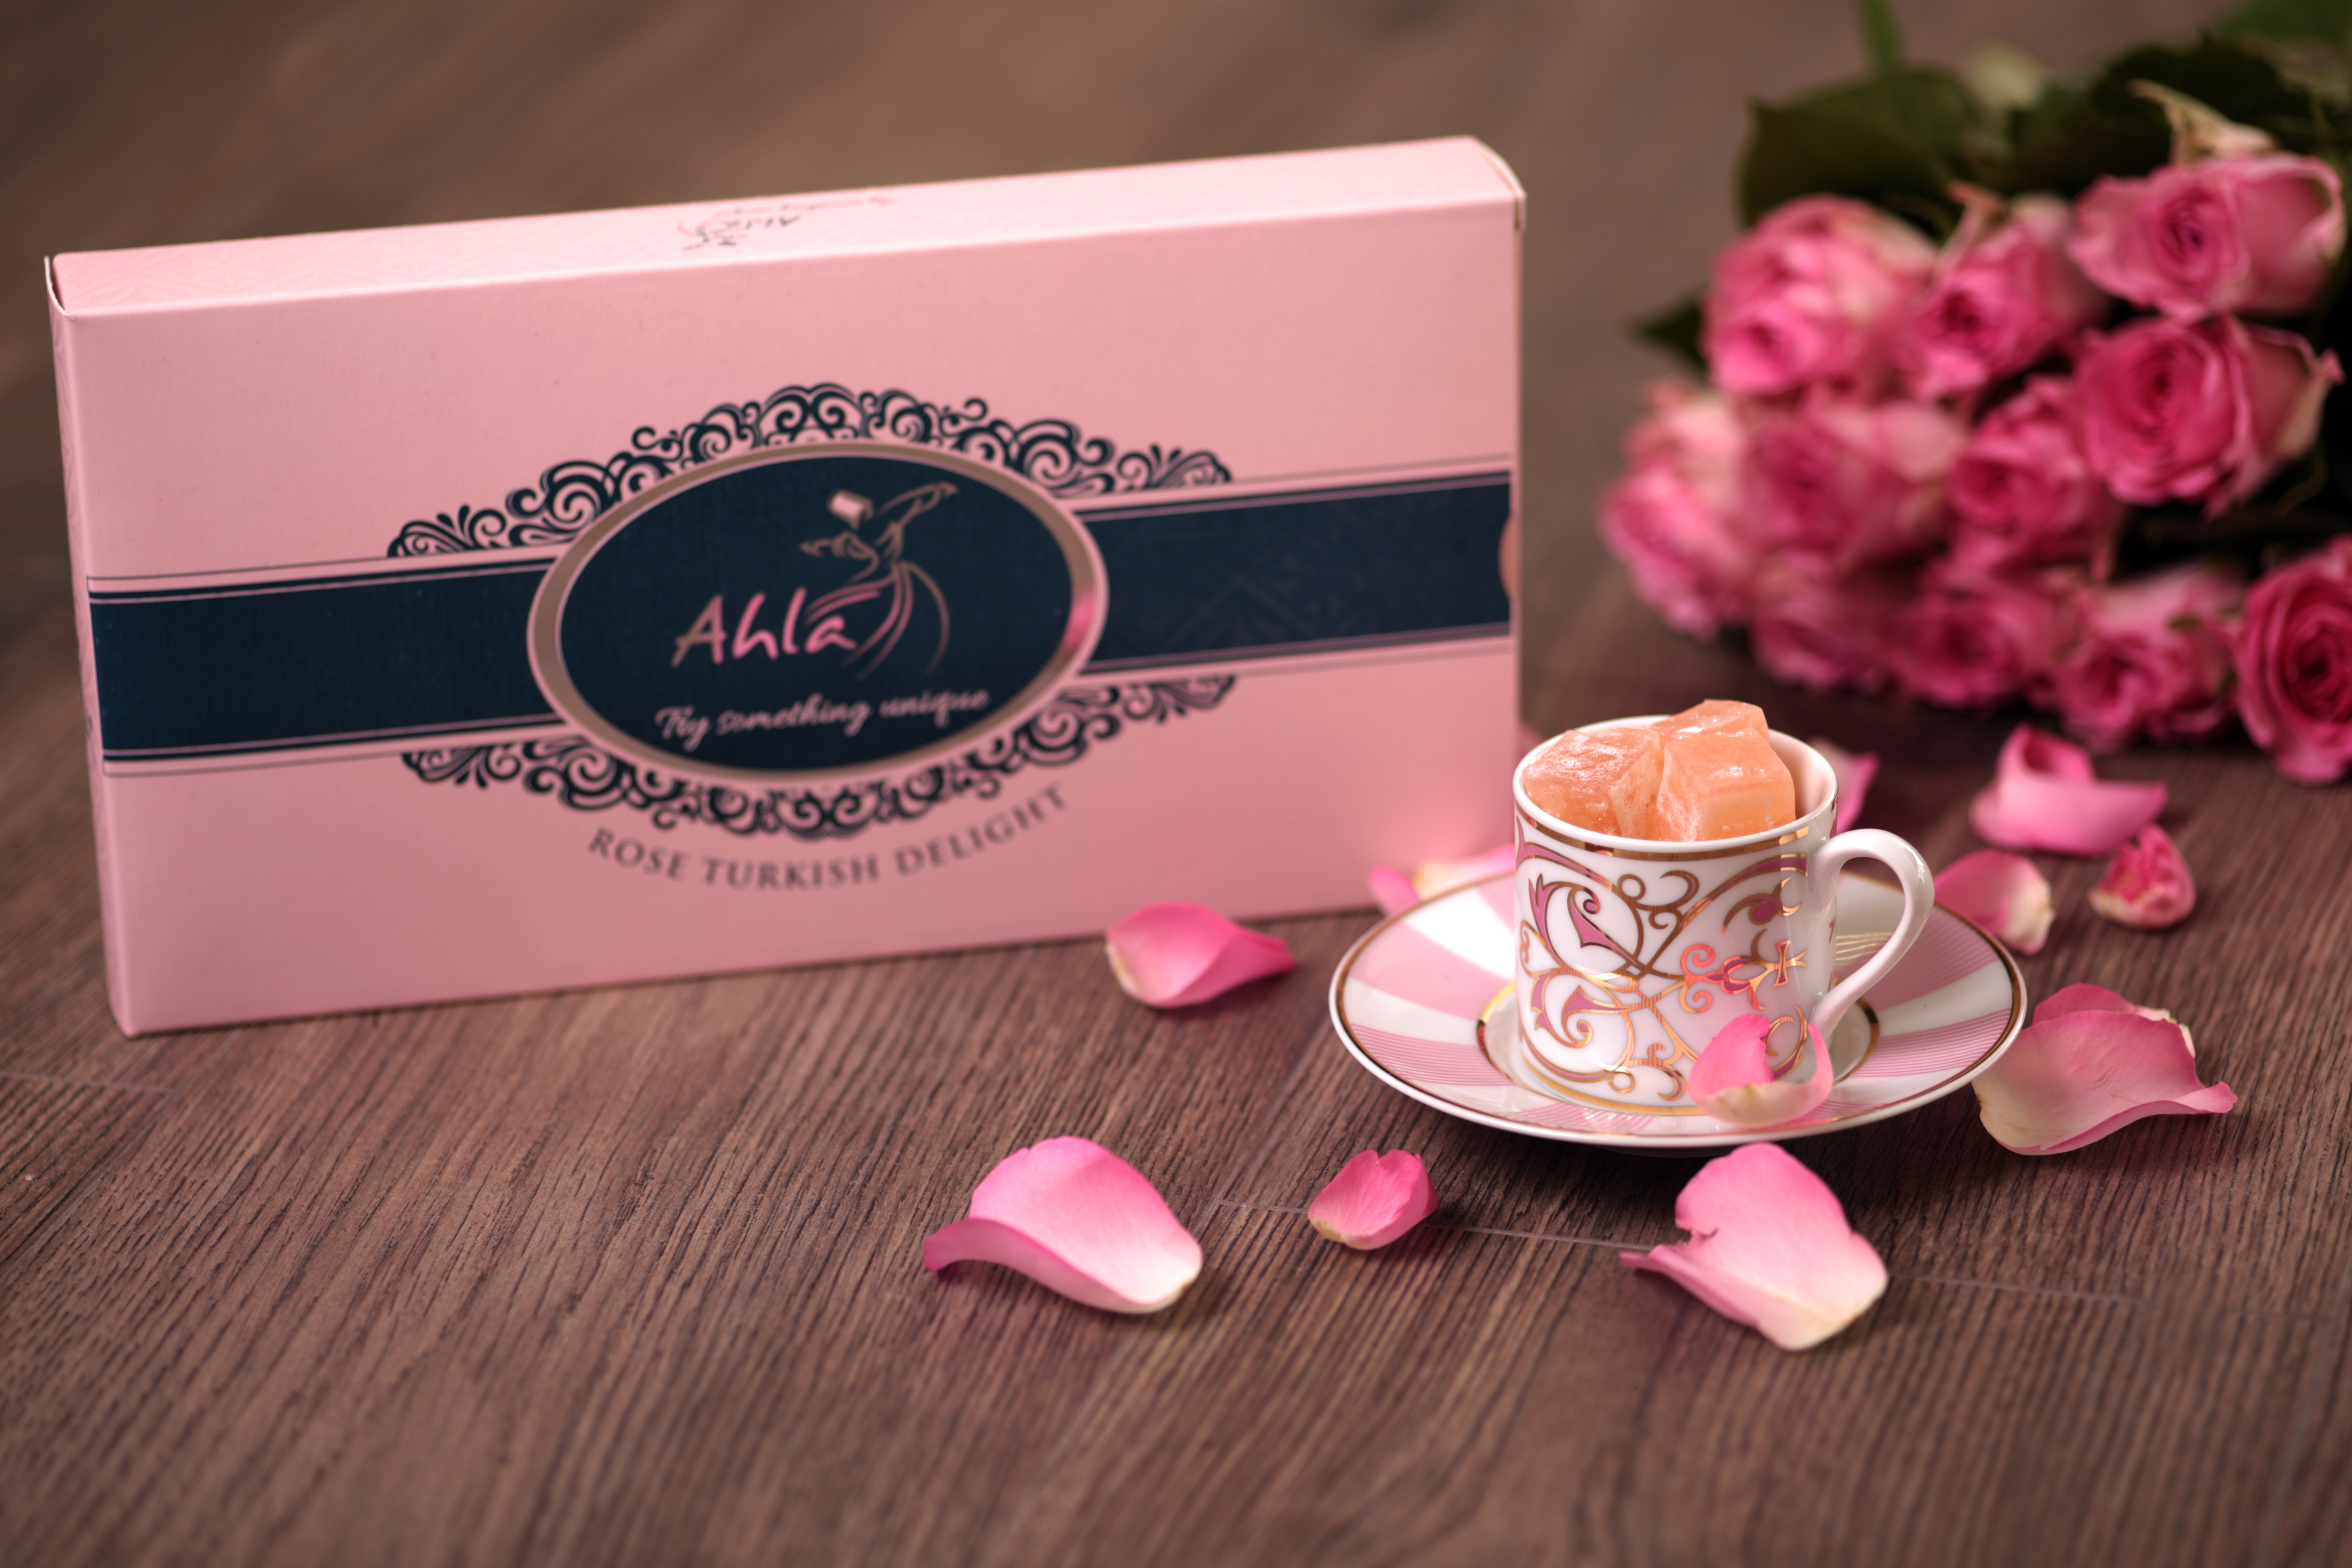 The rose: A flower with deep roots in Turkish culture | ahlaltd